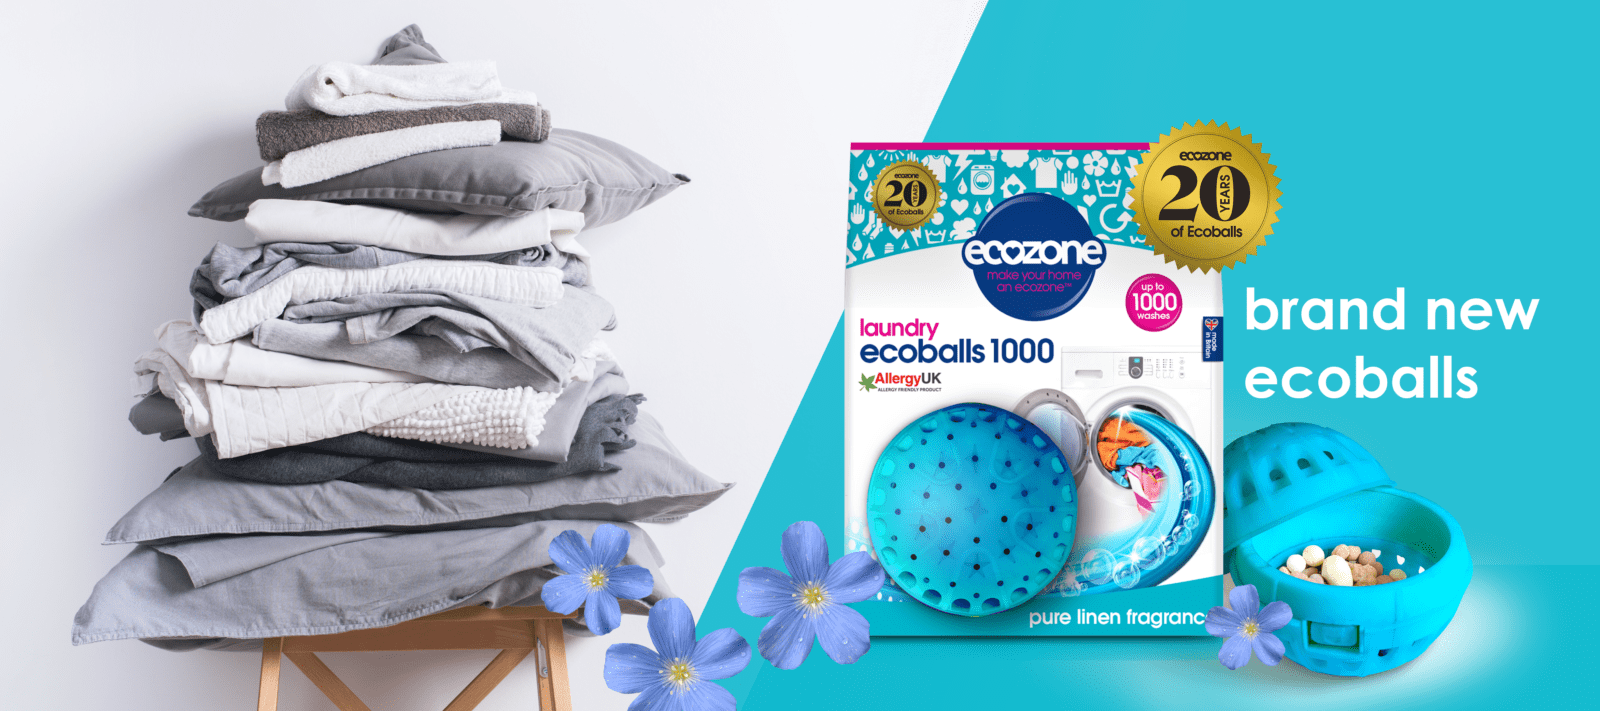 OFFICIAL home of Ecozone ecoballs pure linen